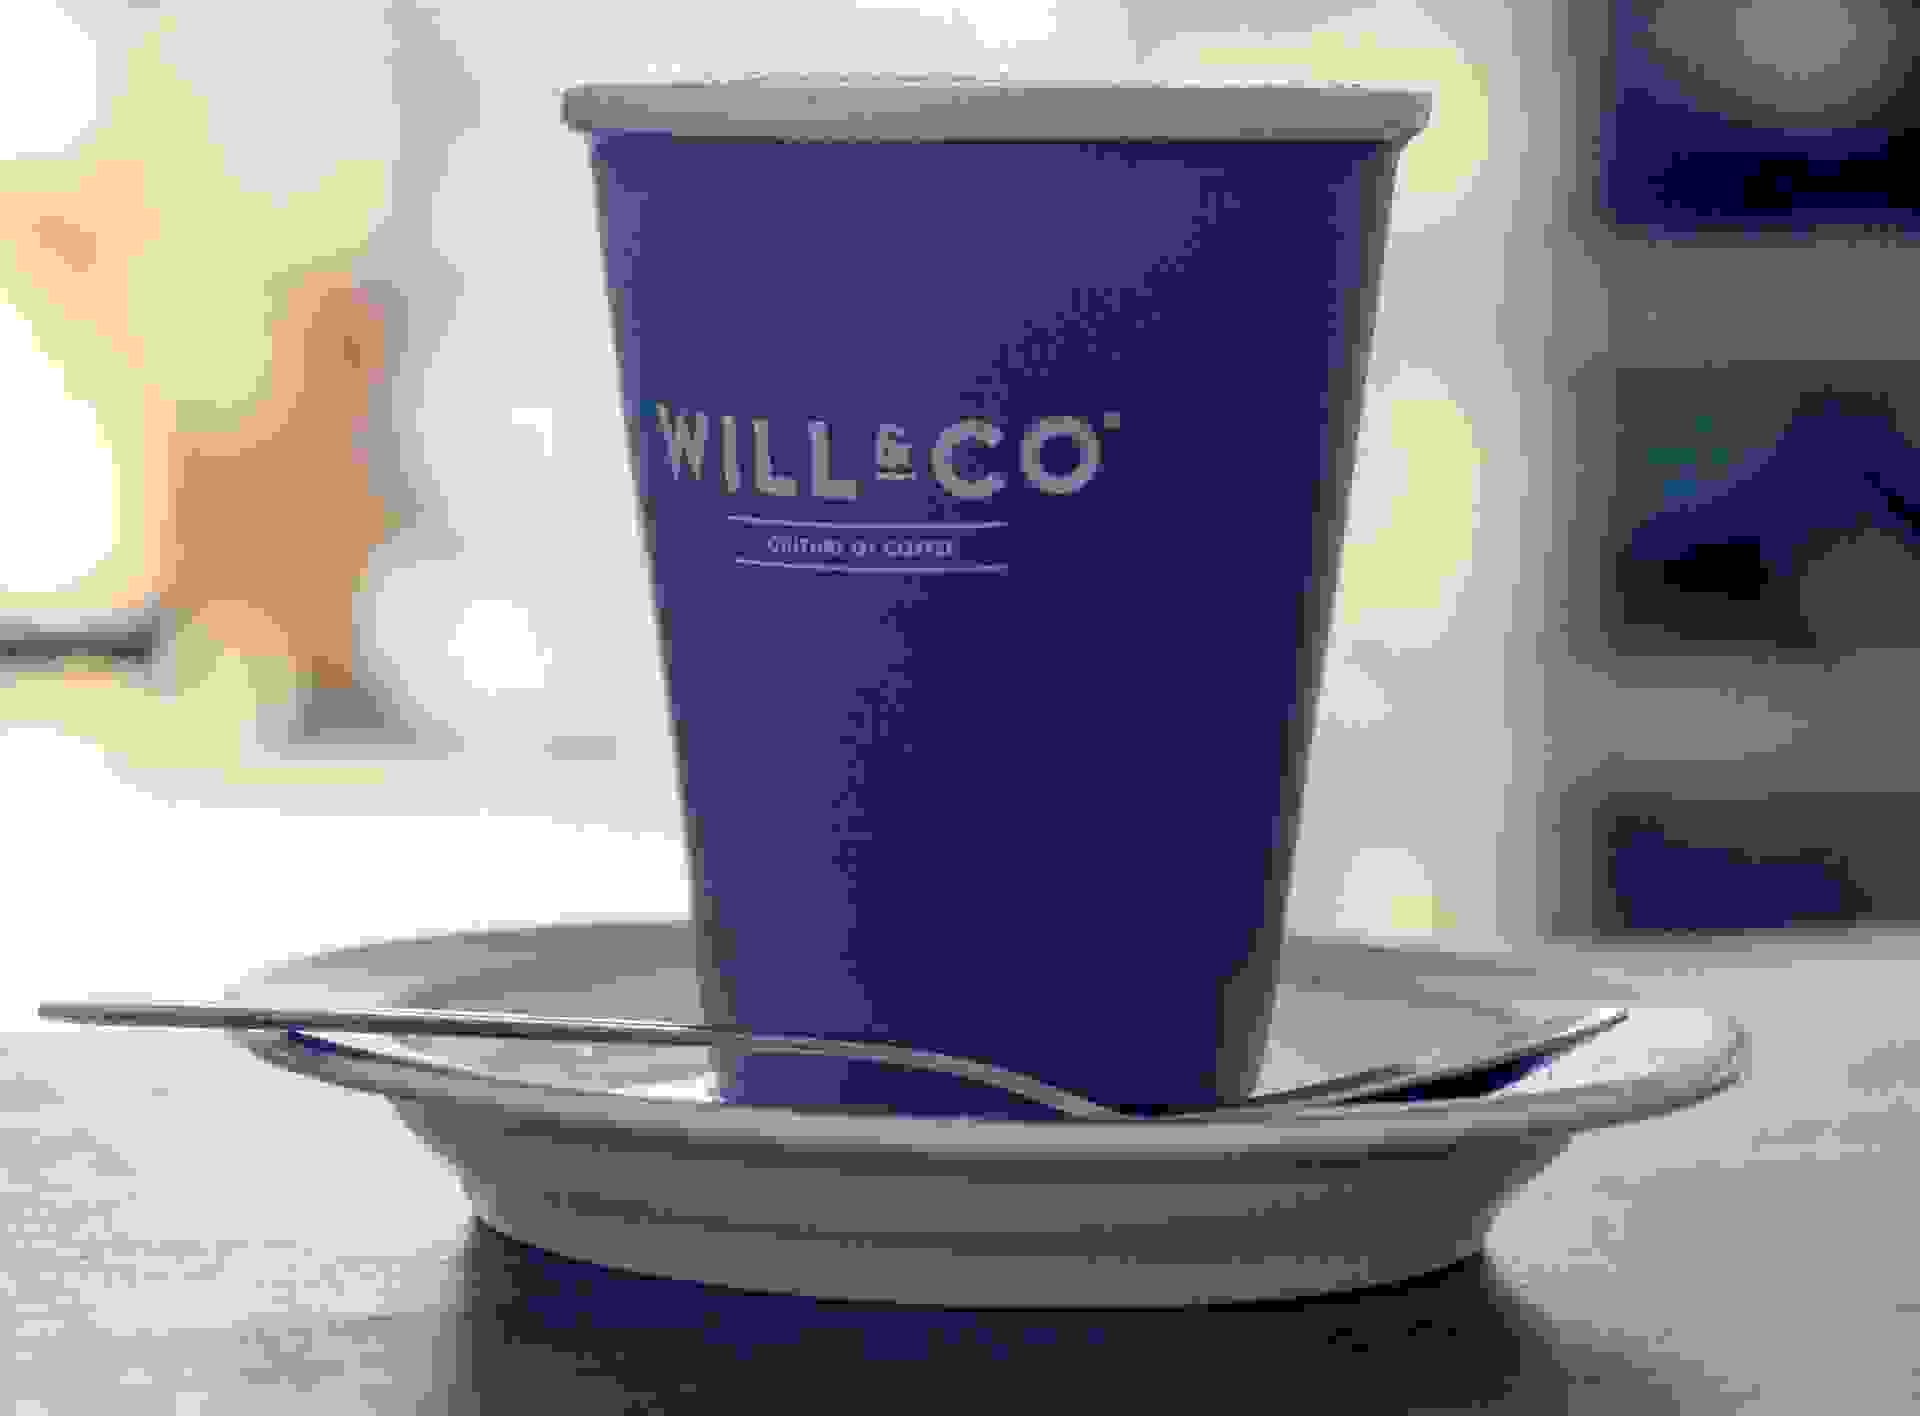 Amazing Will & Co Coffee